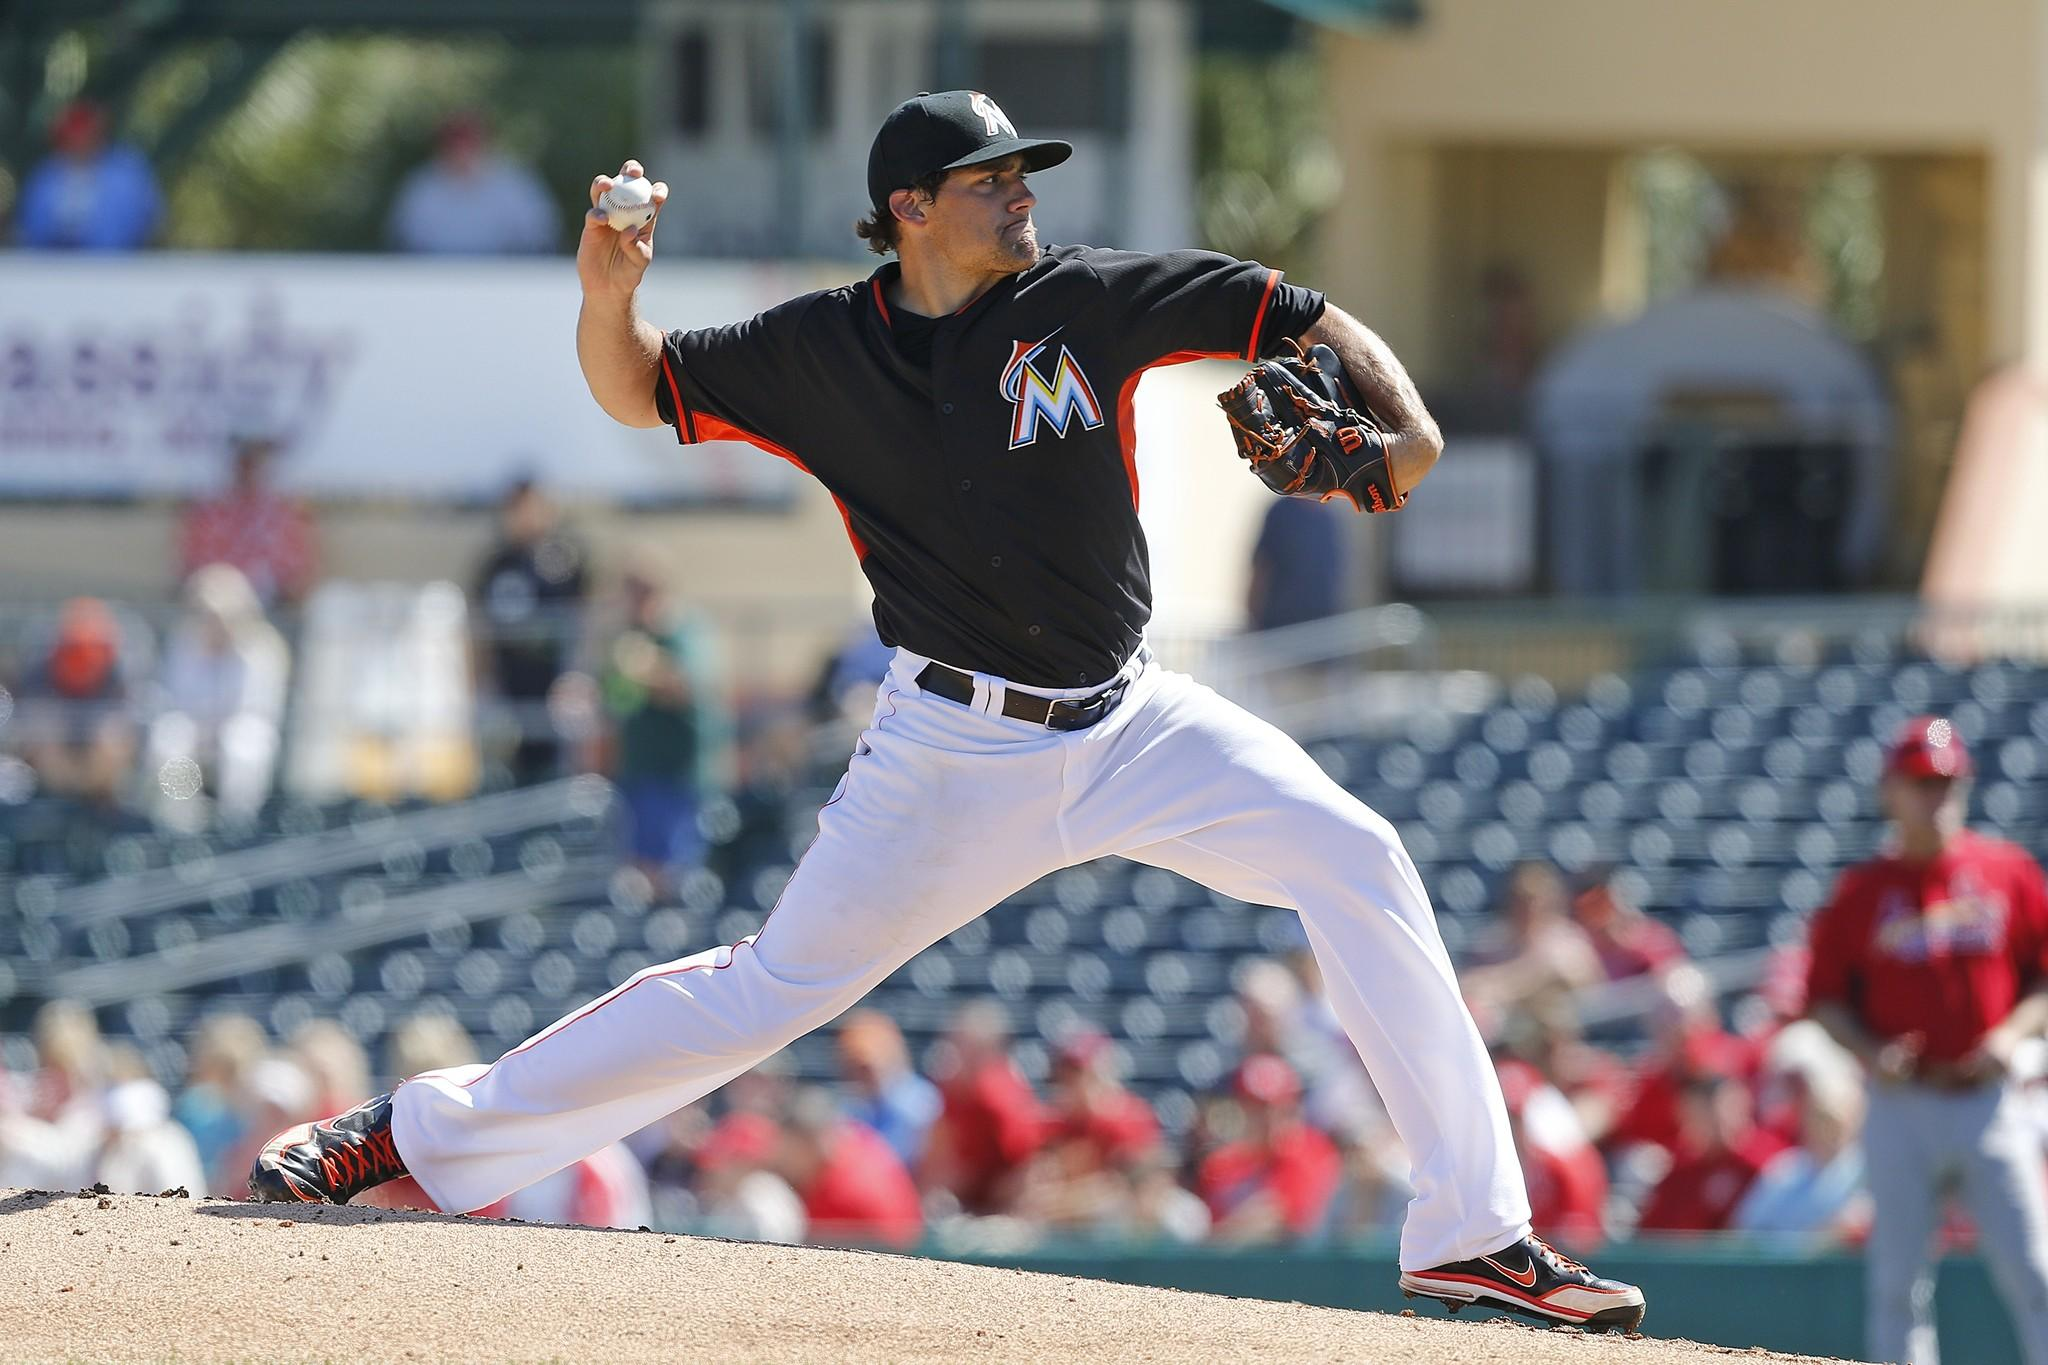 Nathan Eovaldi, 24, is among the reasons Baseball Prospectus rated the Miami Marlins organization baseball's fifth-best in 25-and-under talent.